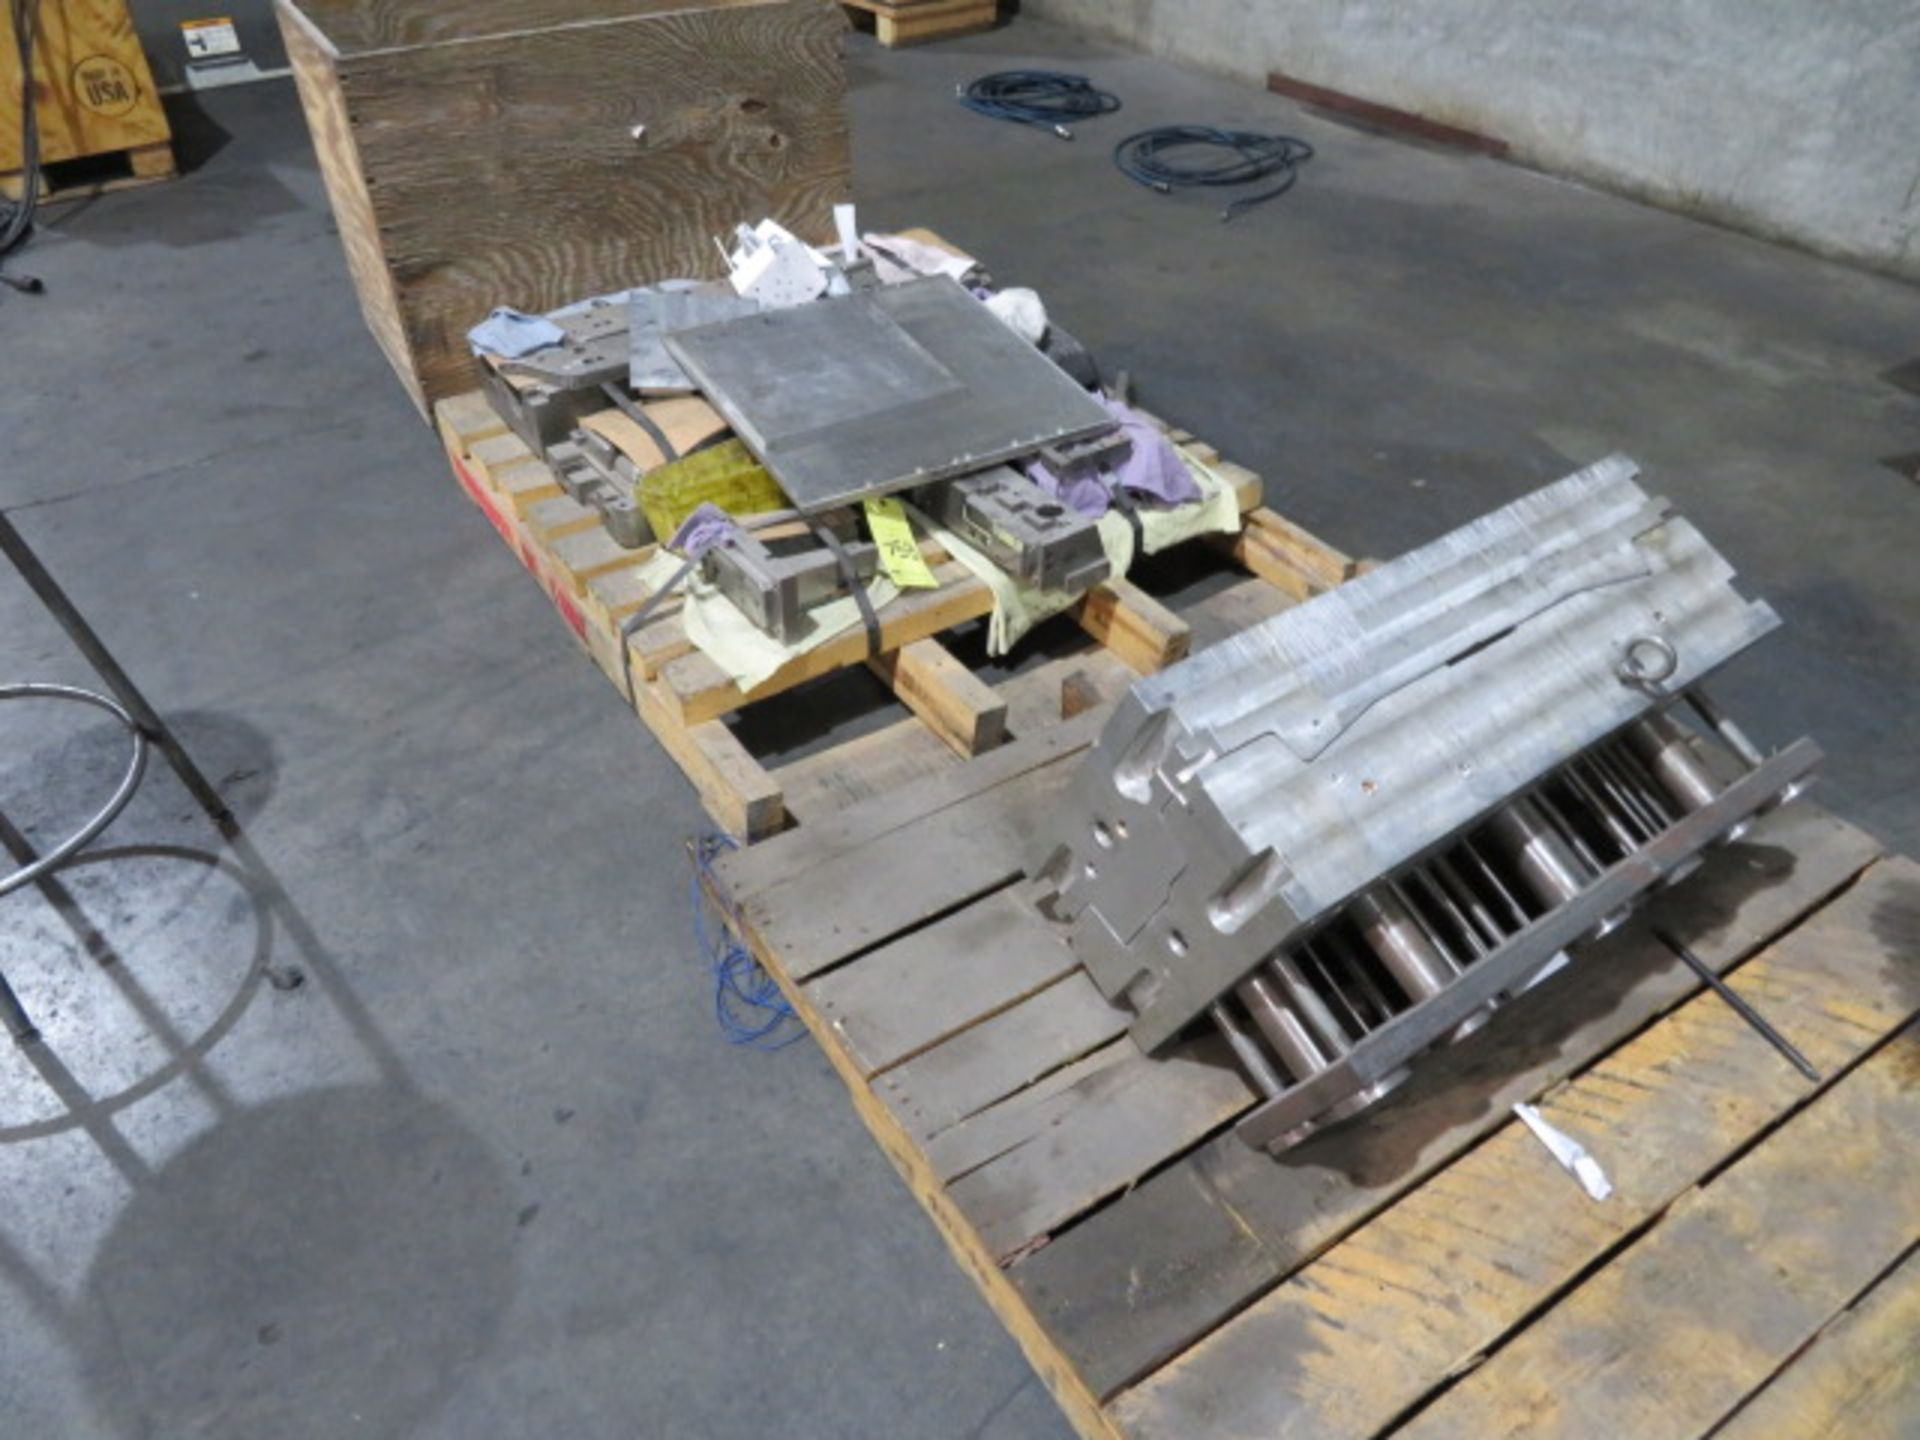 LOT CONSISTING OF: assorted aluminum, surplus, remnant, discontinued molds